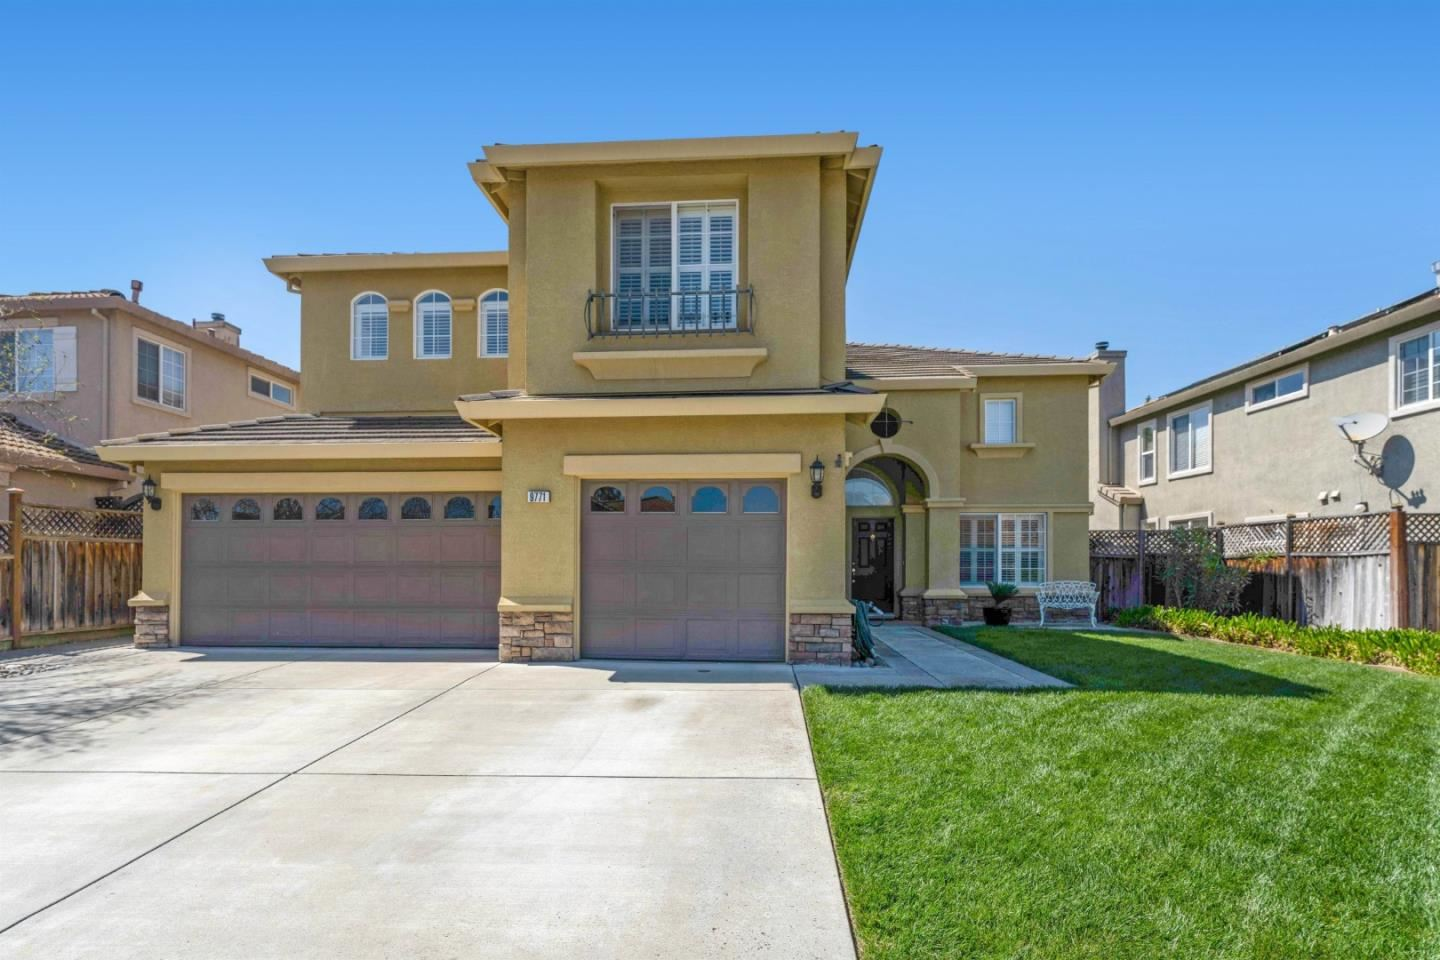 Photo for 9771 Linnet CT, GILROY, CA 95020 (MLS # ML81837223)